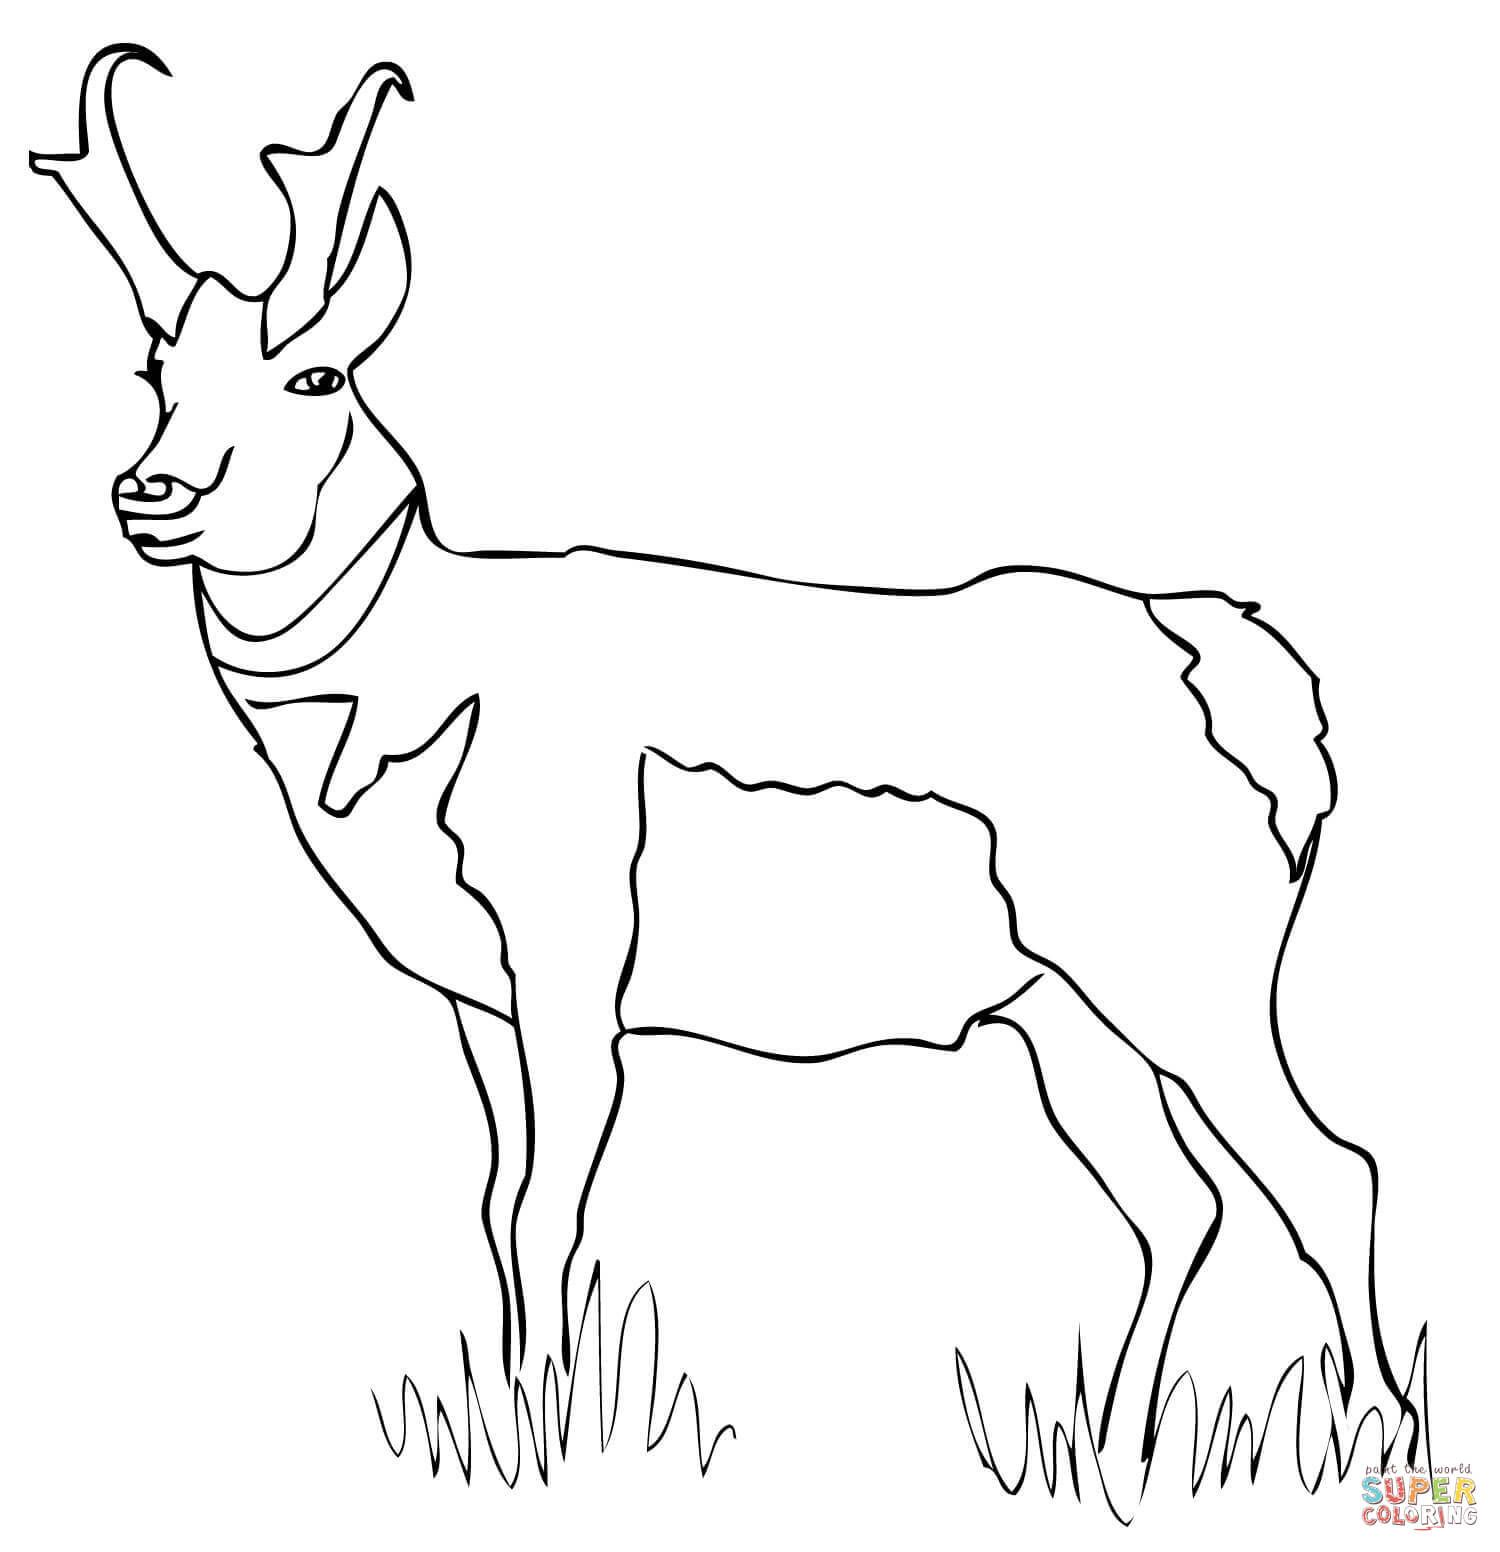 Image result for Pronghorn antelope clipart black and white.